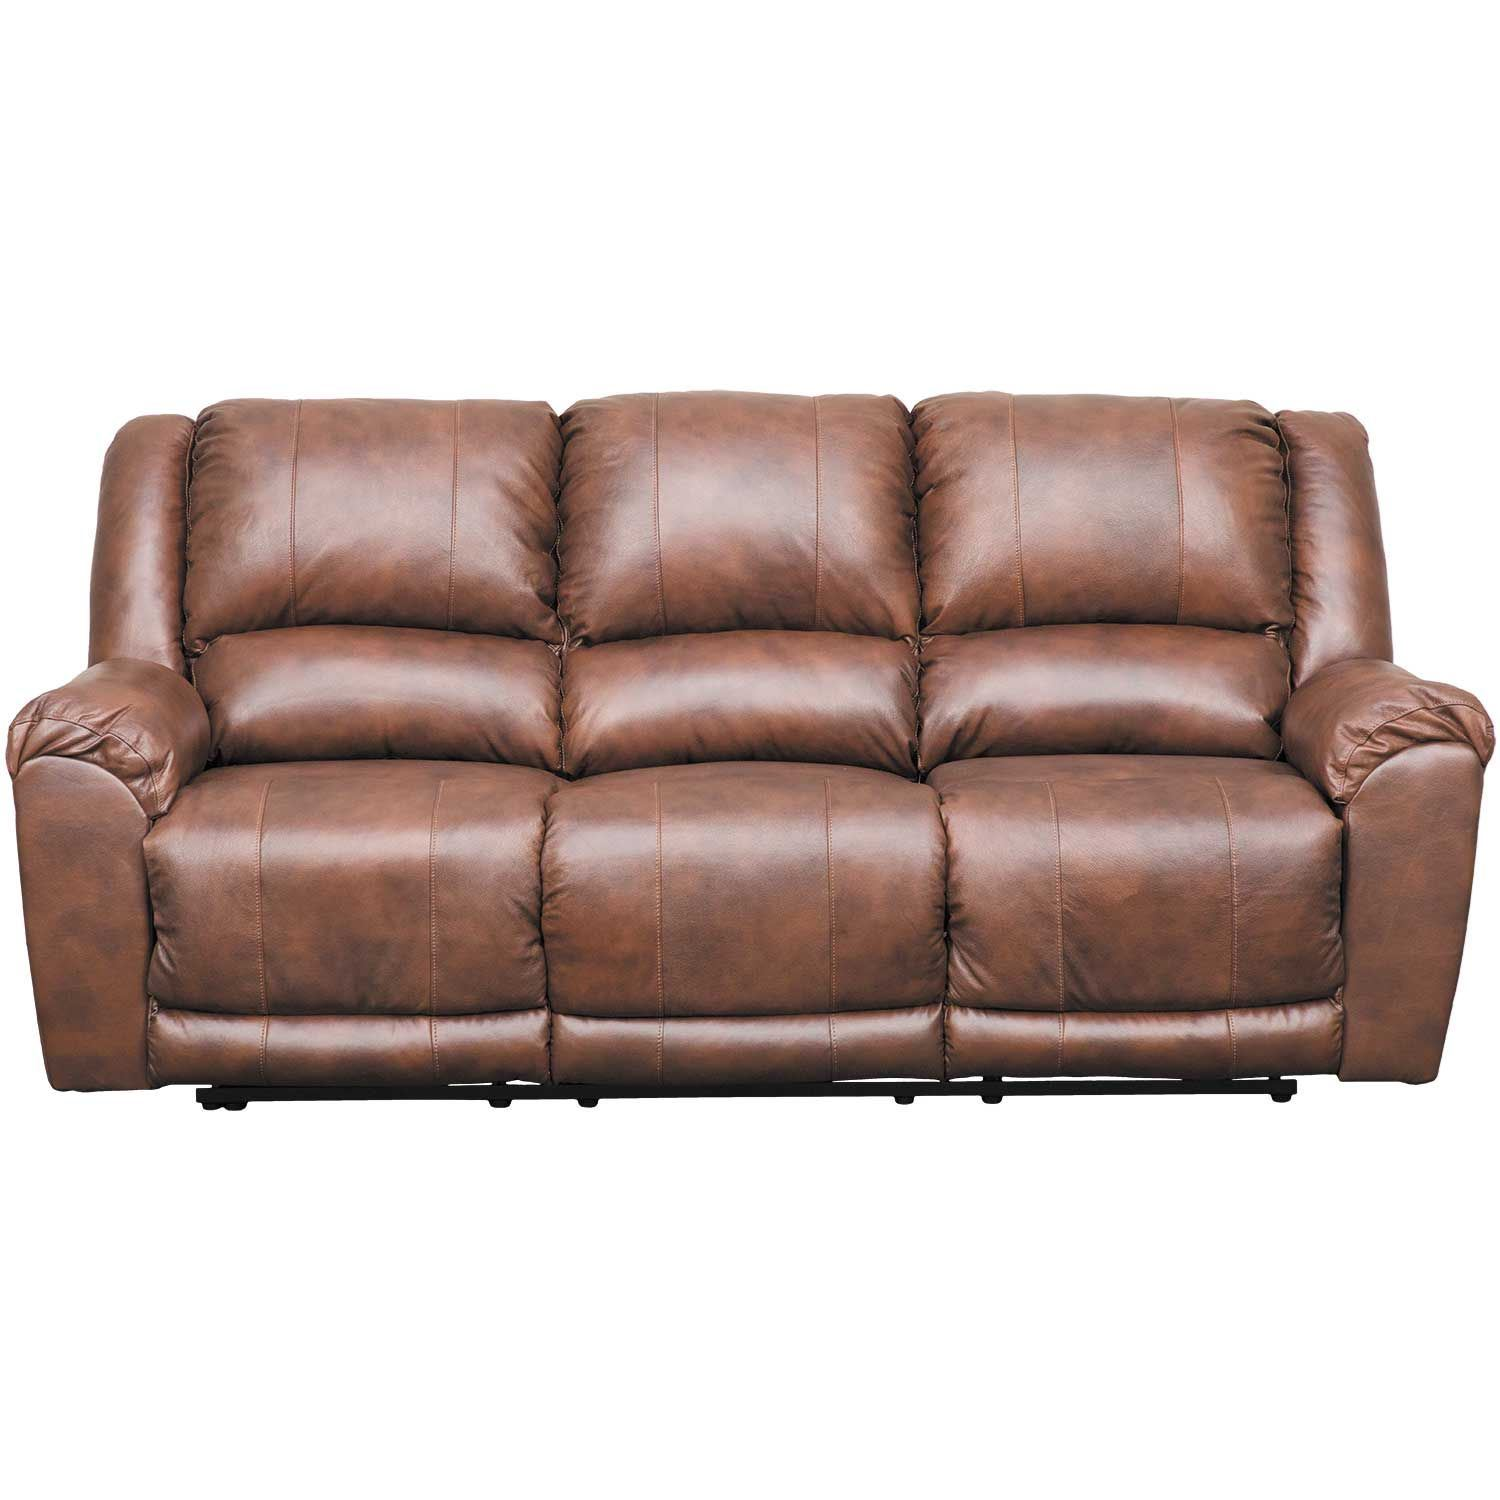 Ashley Brown Leather Sofa: Persiphone Brown Leather Reclining Sofa